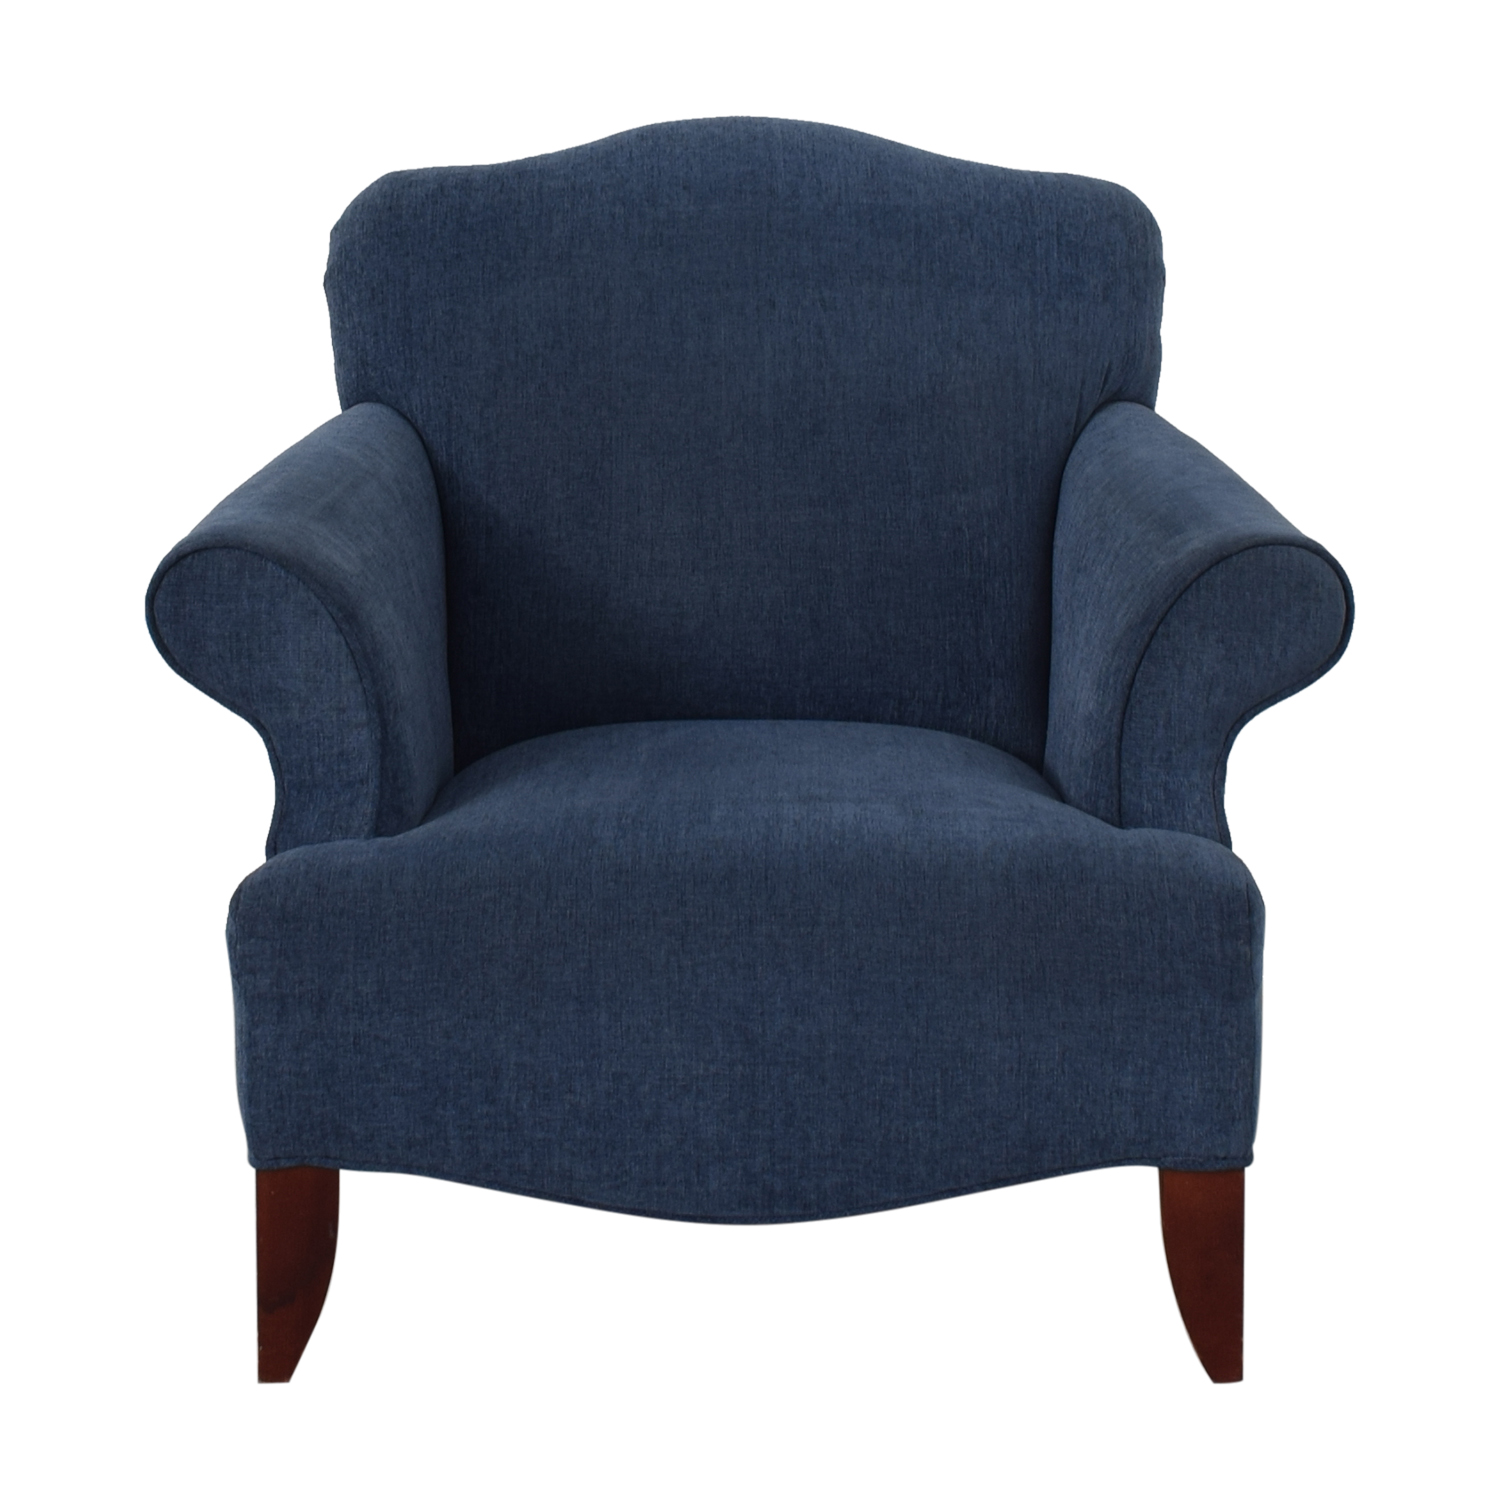 shop  Blue Upholstered Arm Chair online